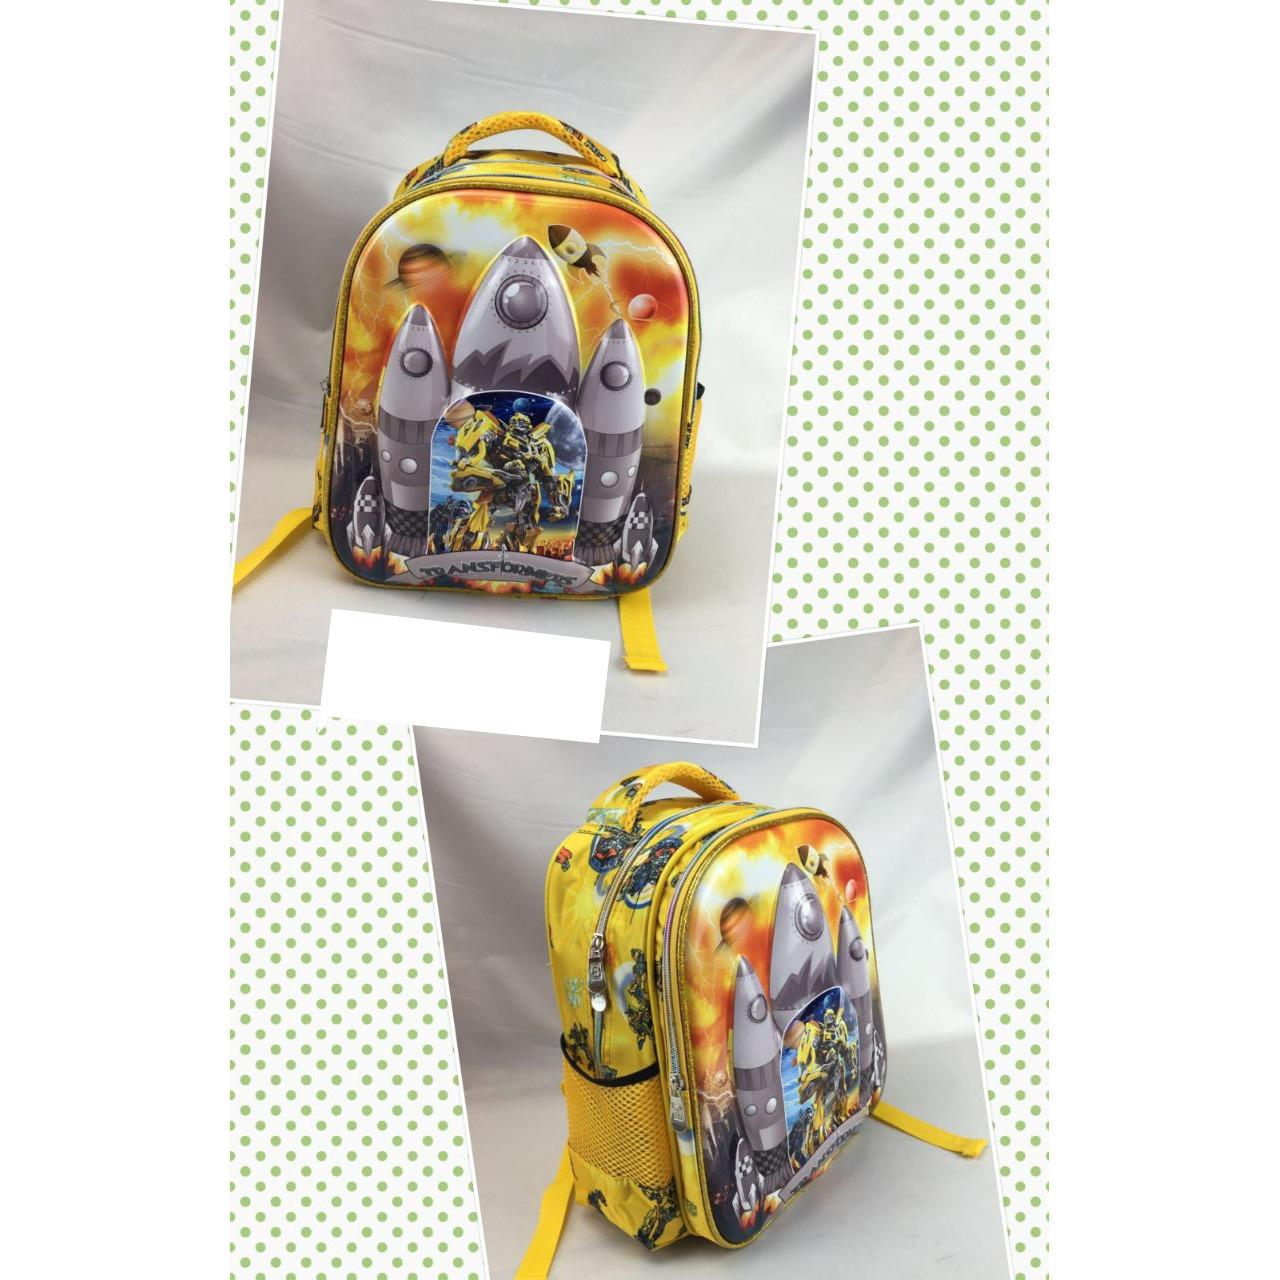 Promo Onlan Transformers 6D Timbul Anti Gores Tas Ransel Tk New Arrival Import Yellow Murah